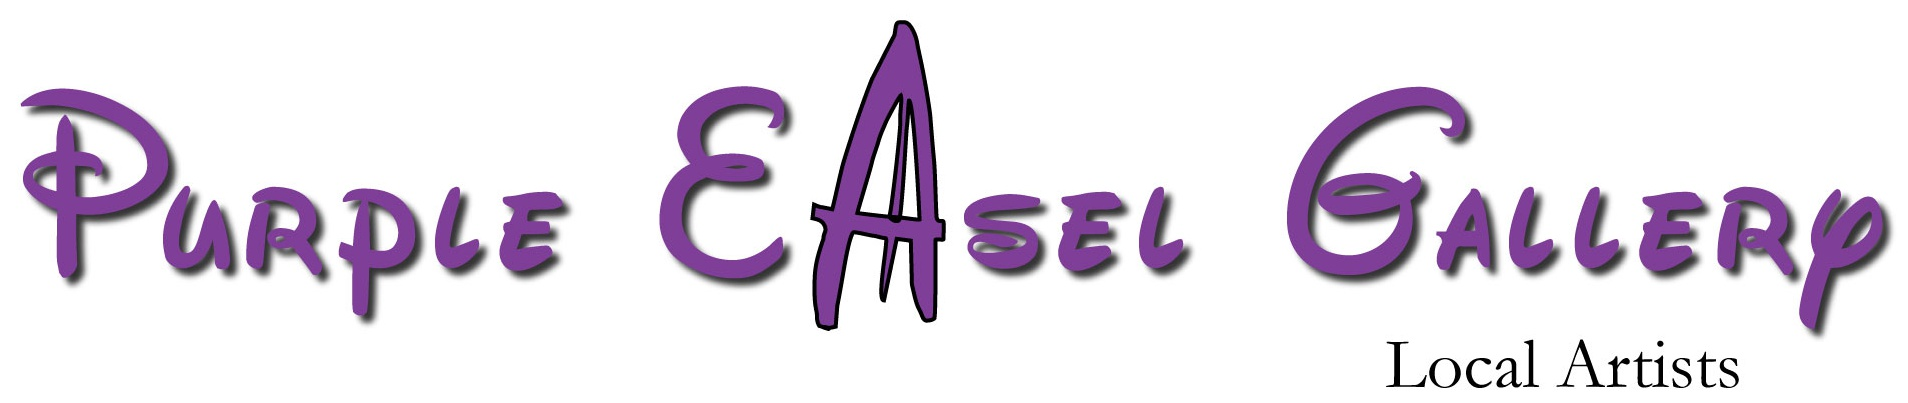 The Purple Easel Gallery